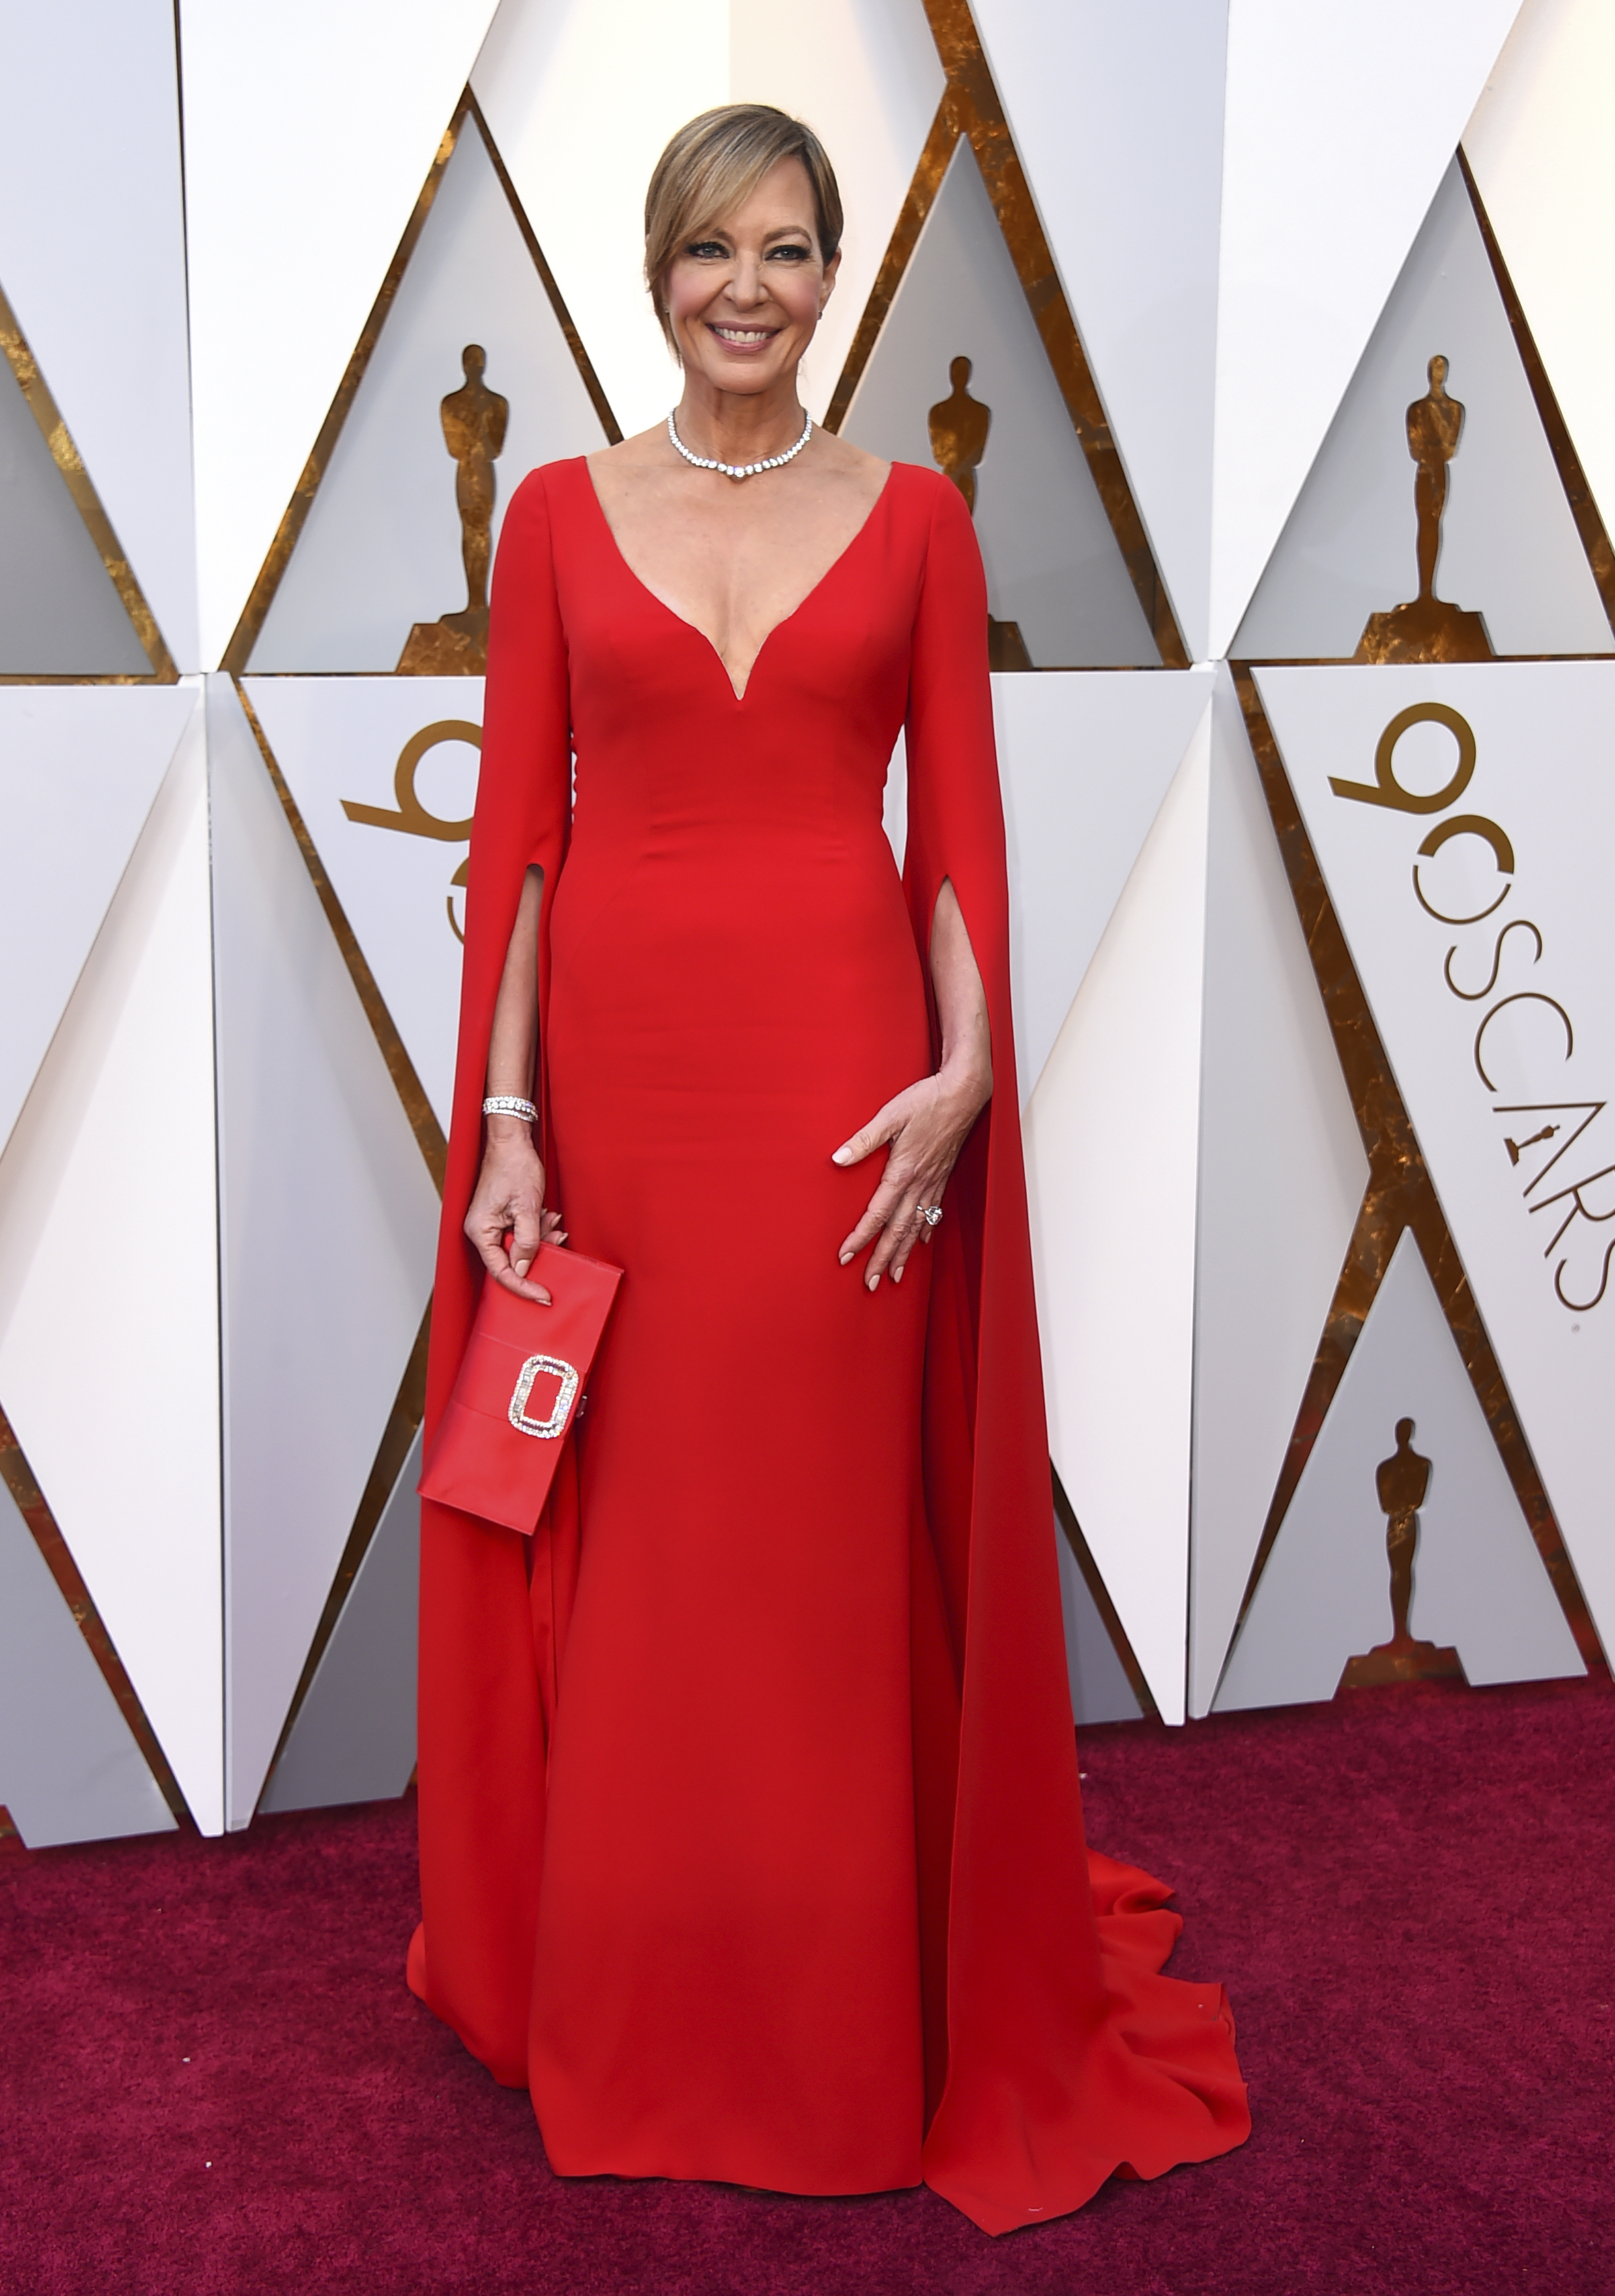 "<div class=""meta image-caption""><div class=""origin-logo origin-image none""><span>none</span></div><span class=""caption-text"">Best Supporting Actress nominee Allison Janney of ''I, Tonya'' arrives at the Oscars on Sunday, March 4, 2018, at the Dolby Theatre in Los Angeles. (Jordan Strauss/Invision/AP)</span></div>"